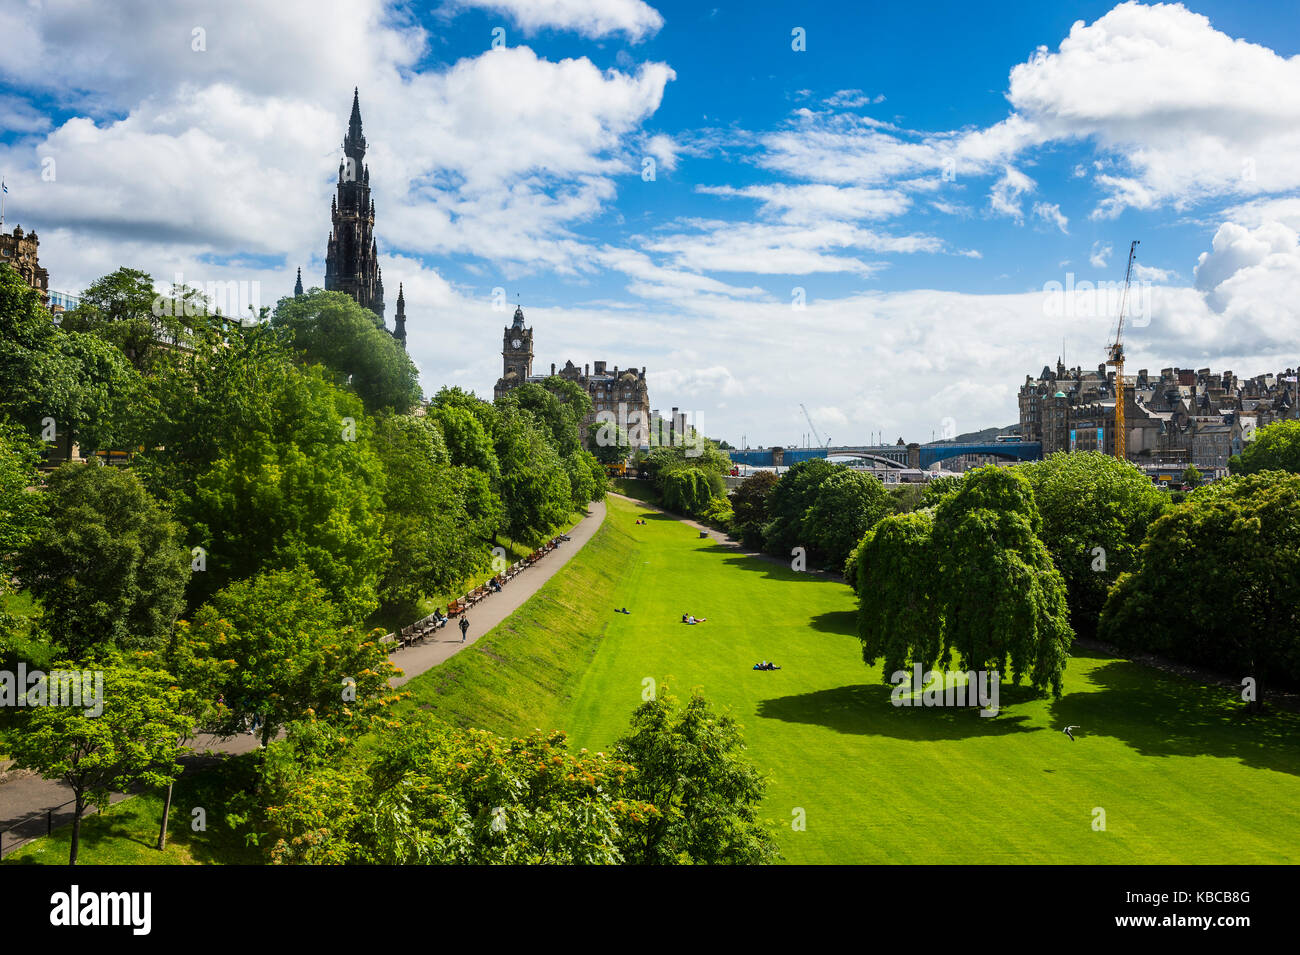 View over Princes Street Gardens, Edinburgh, Scotland, United Kingdom, Europe - Stock Image